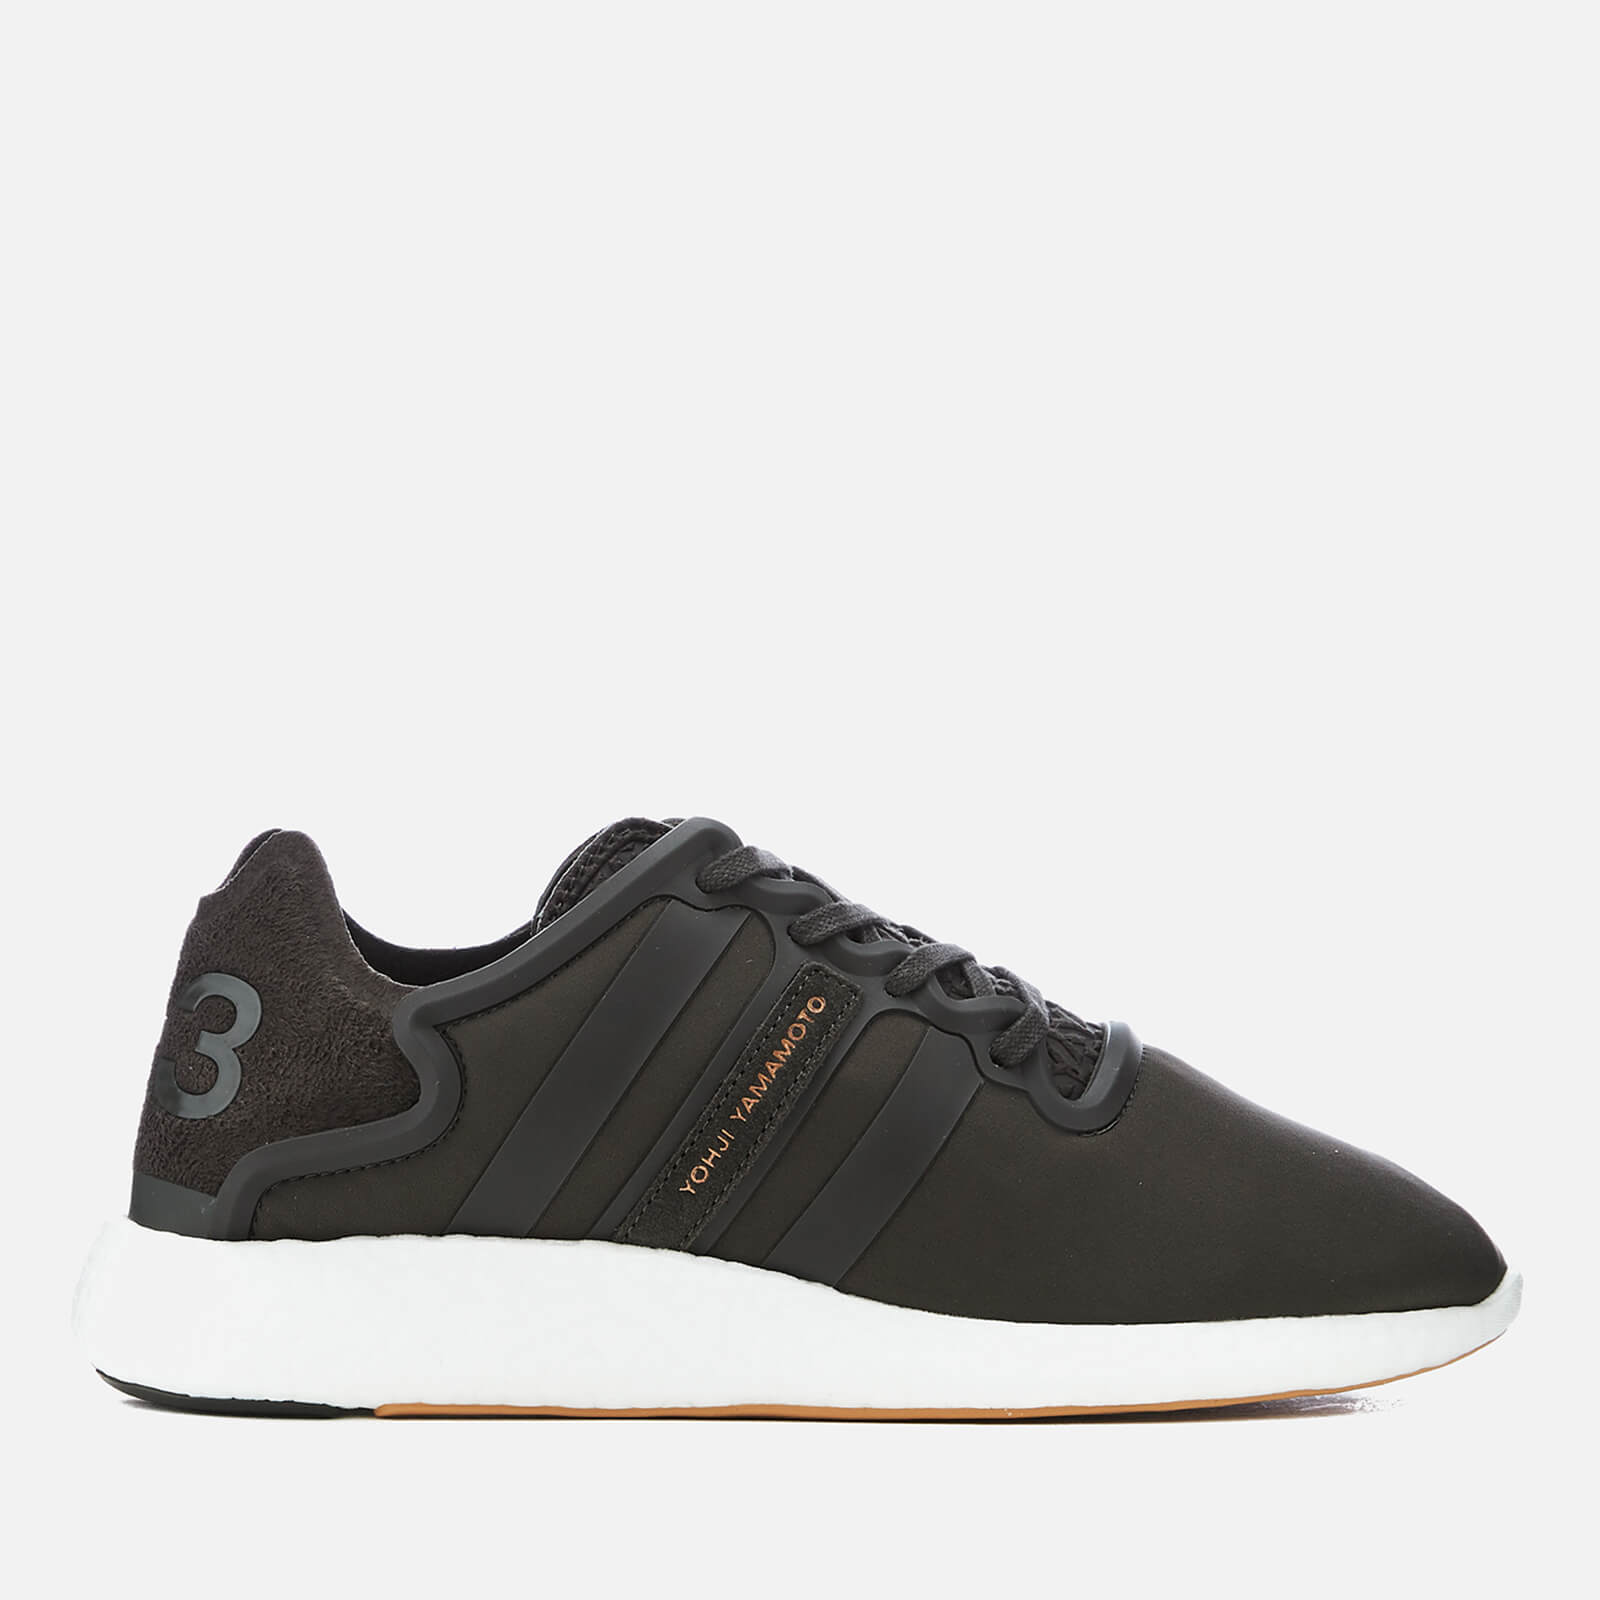 d2916244c8b2c Y-3 Yohji Run Sneakers - Y-3 Black Olive - Free UK Delivery over £50